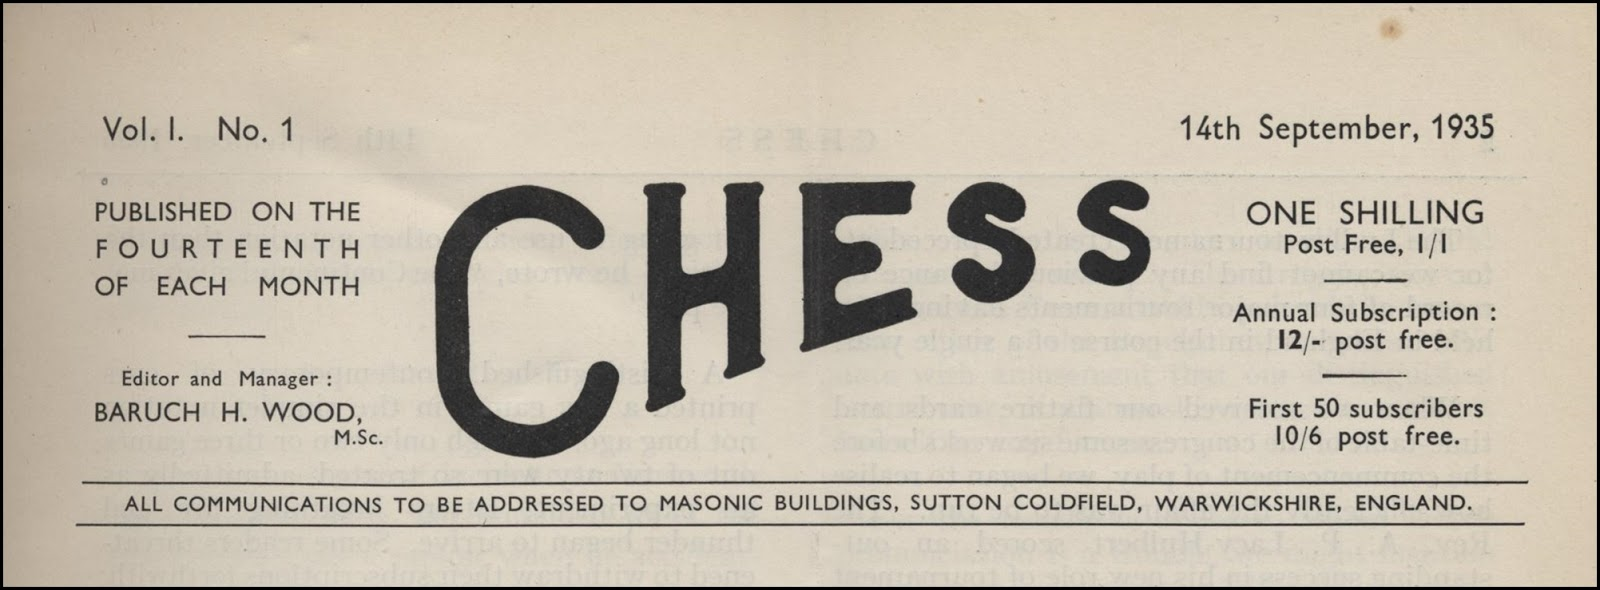 CHESS masthead for Volume 1, Number 1, 1935. Source : Michael Clapham